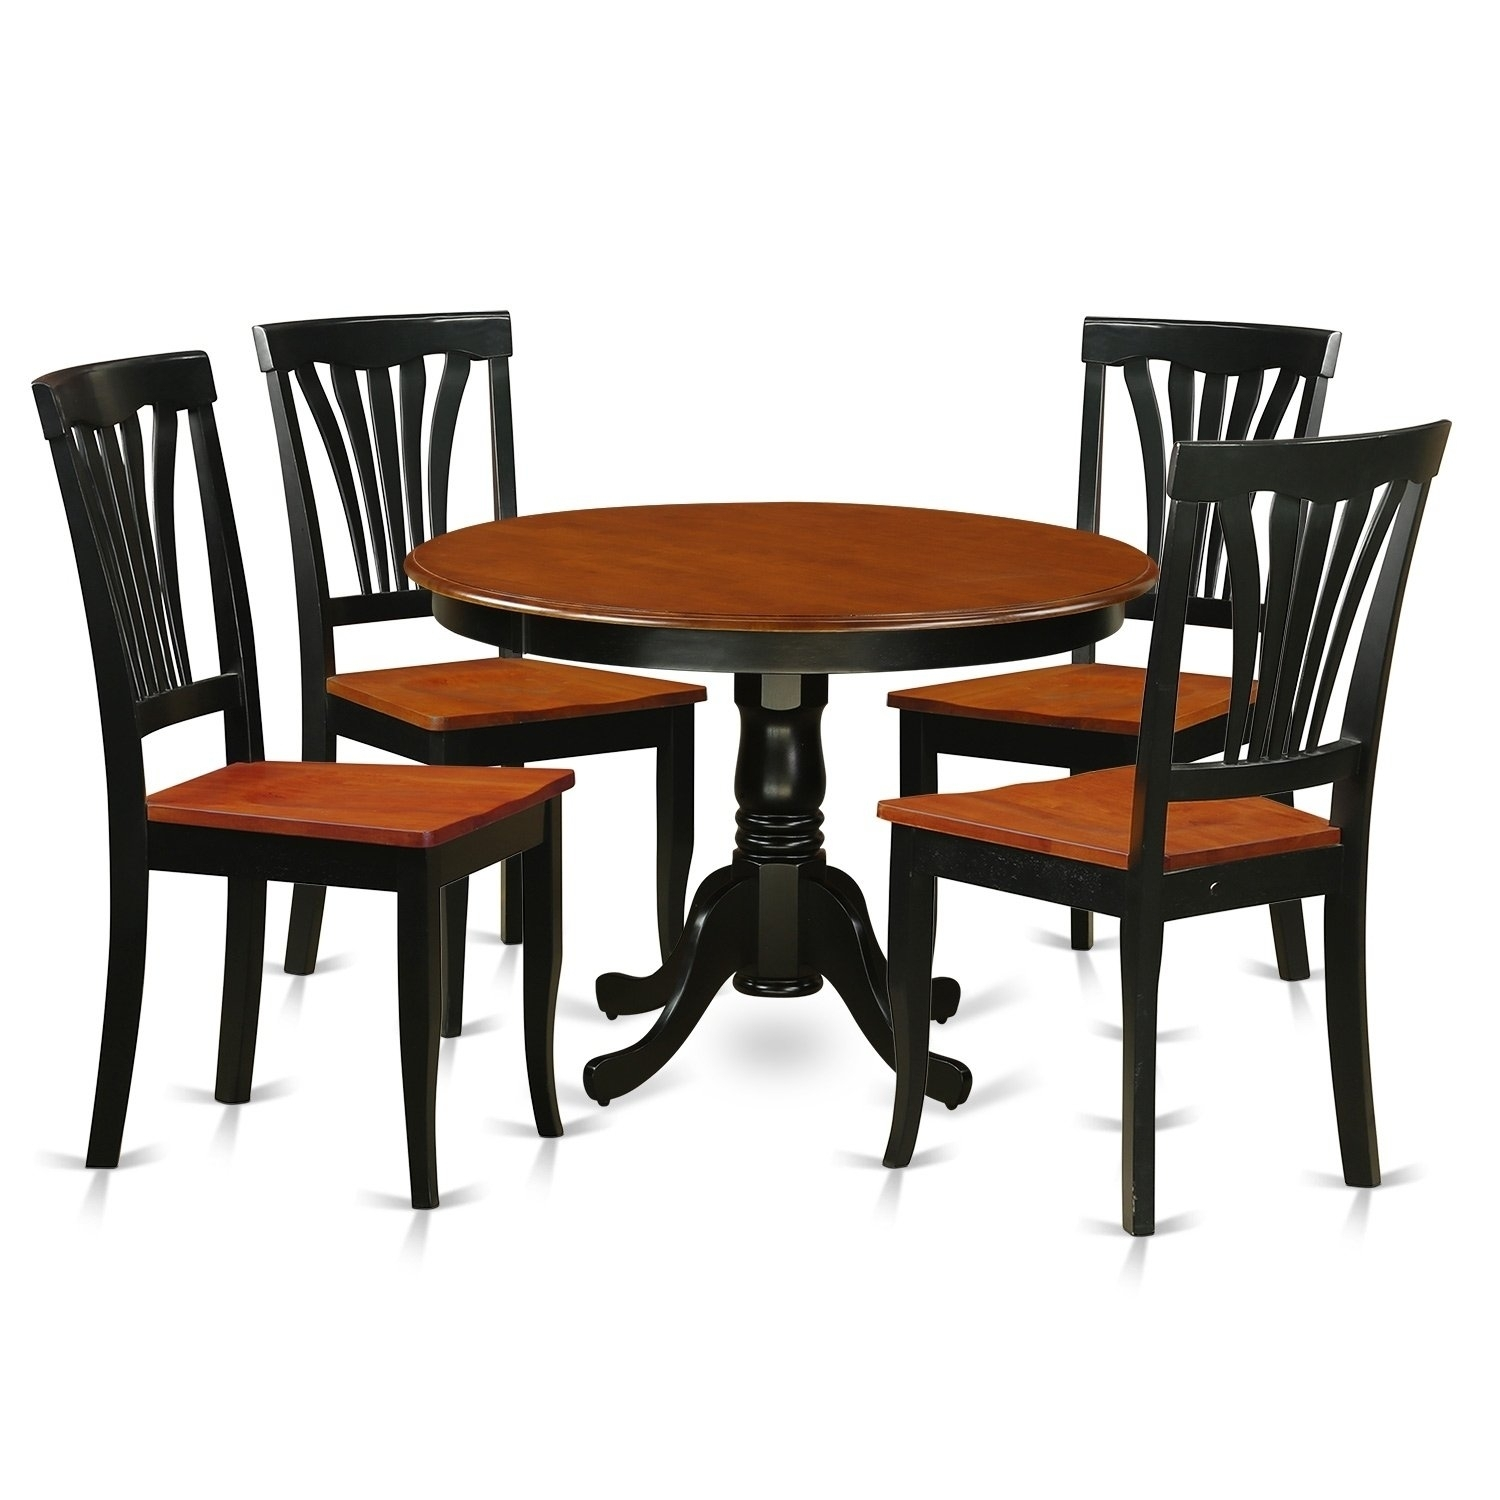 Hlav5 W 5 Pc Table Set With A Dinette Table And 4 Dining Chairs Throughout Most Current Caden 5 Piece Round Dining Sets With Upholstered Side Chairs (View 4 of 20)